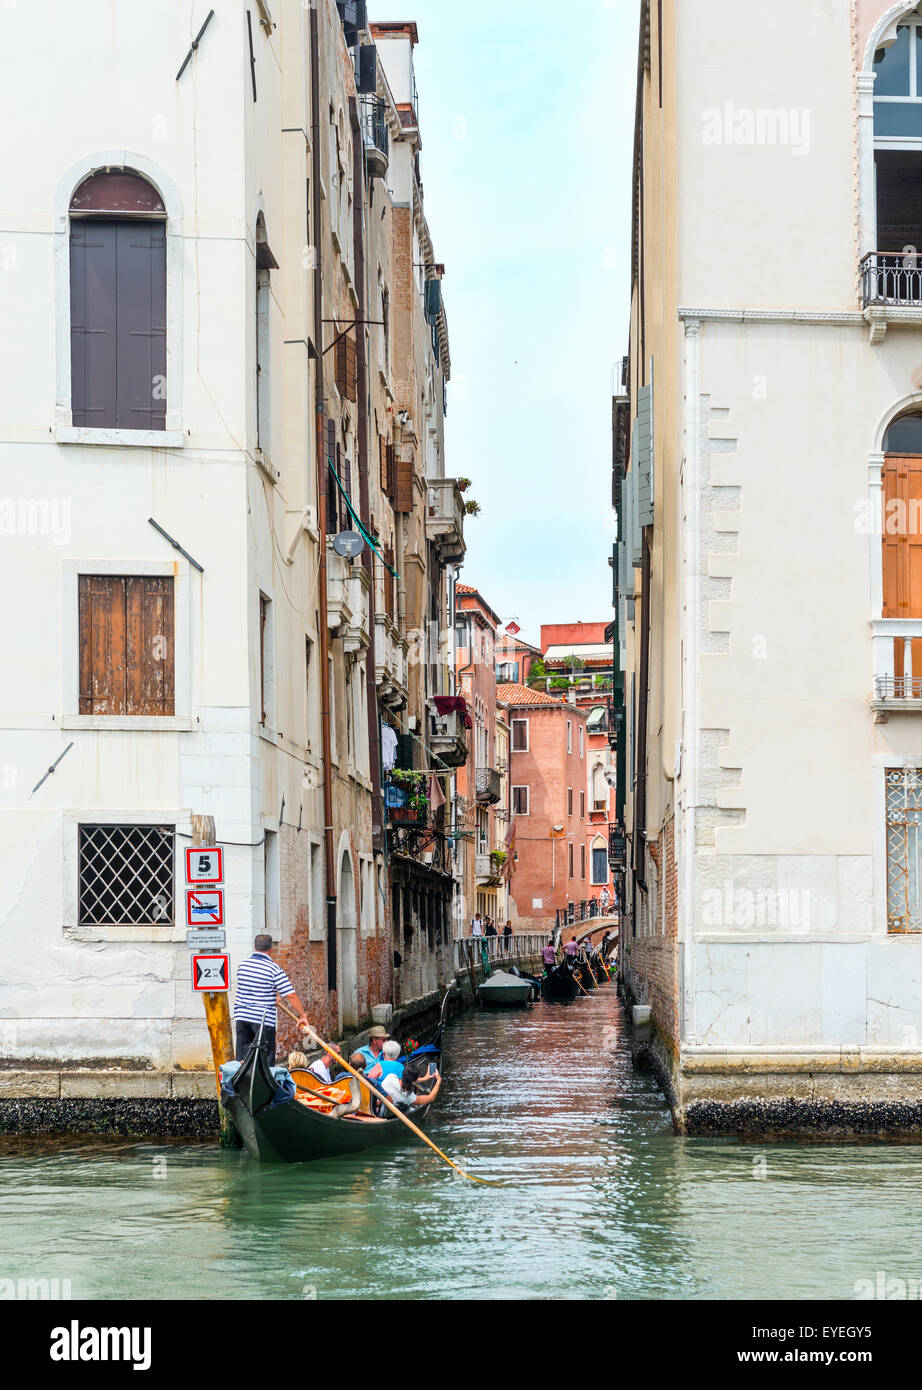 View of a side Canal off the Grand Canal, Venice, Veneto Region, Italy Stock Photo